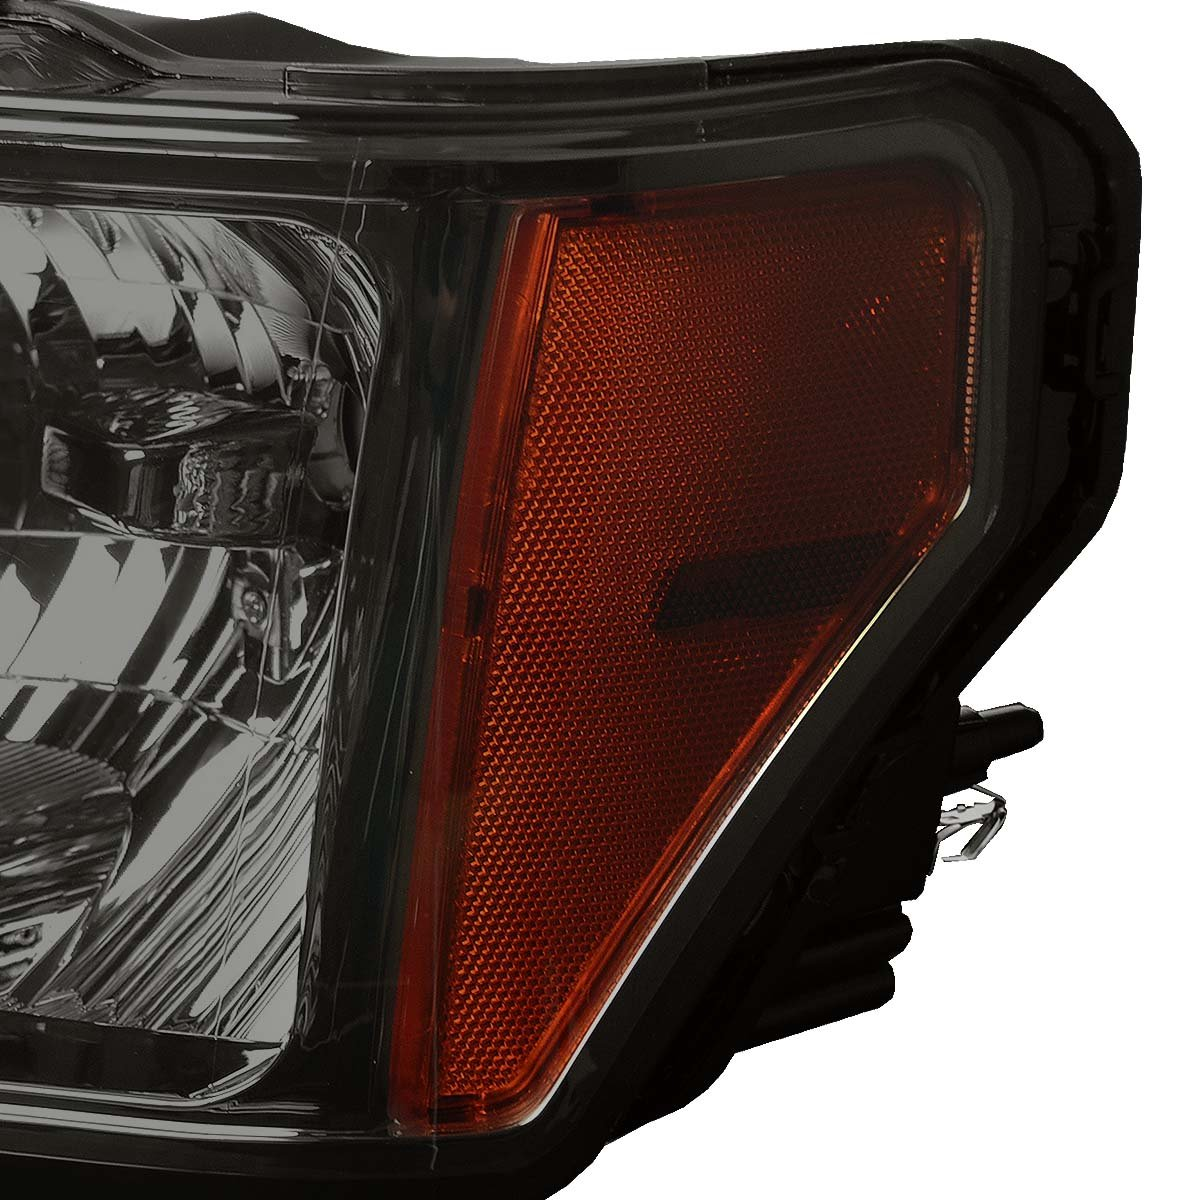 Driver /& Passenger Side HL-OH-F1509-SM-AM DNA Motoring HLOHF1509SMAM Headlight